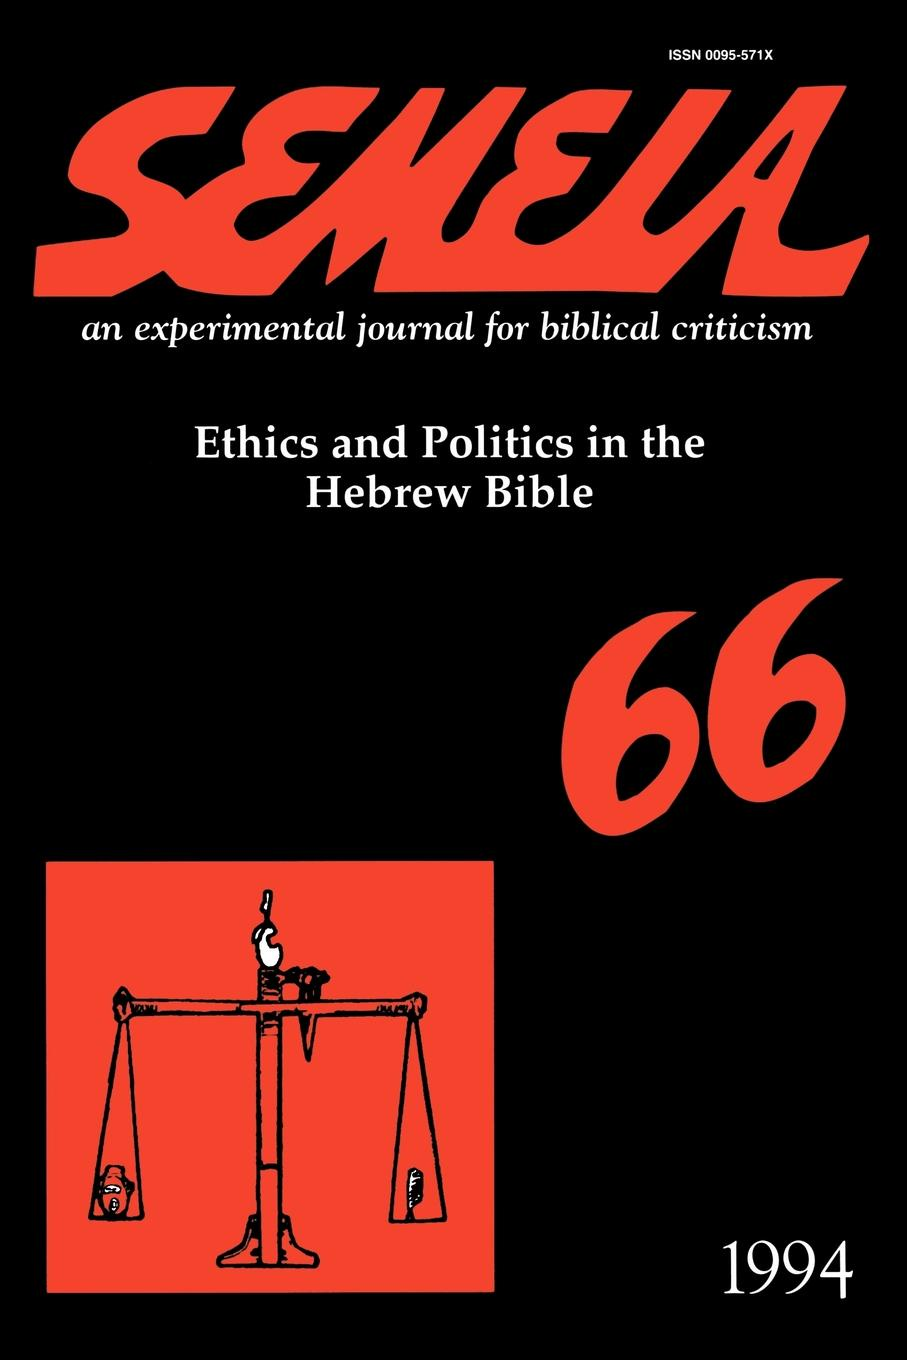 Semeia 66. Ethics and Politics in the Hebrew Bible burke o long planting and reaping albright politics ideology and interpreting the bible